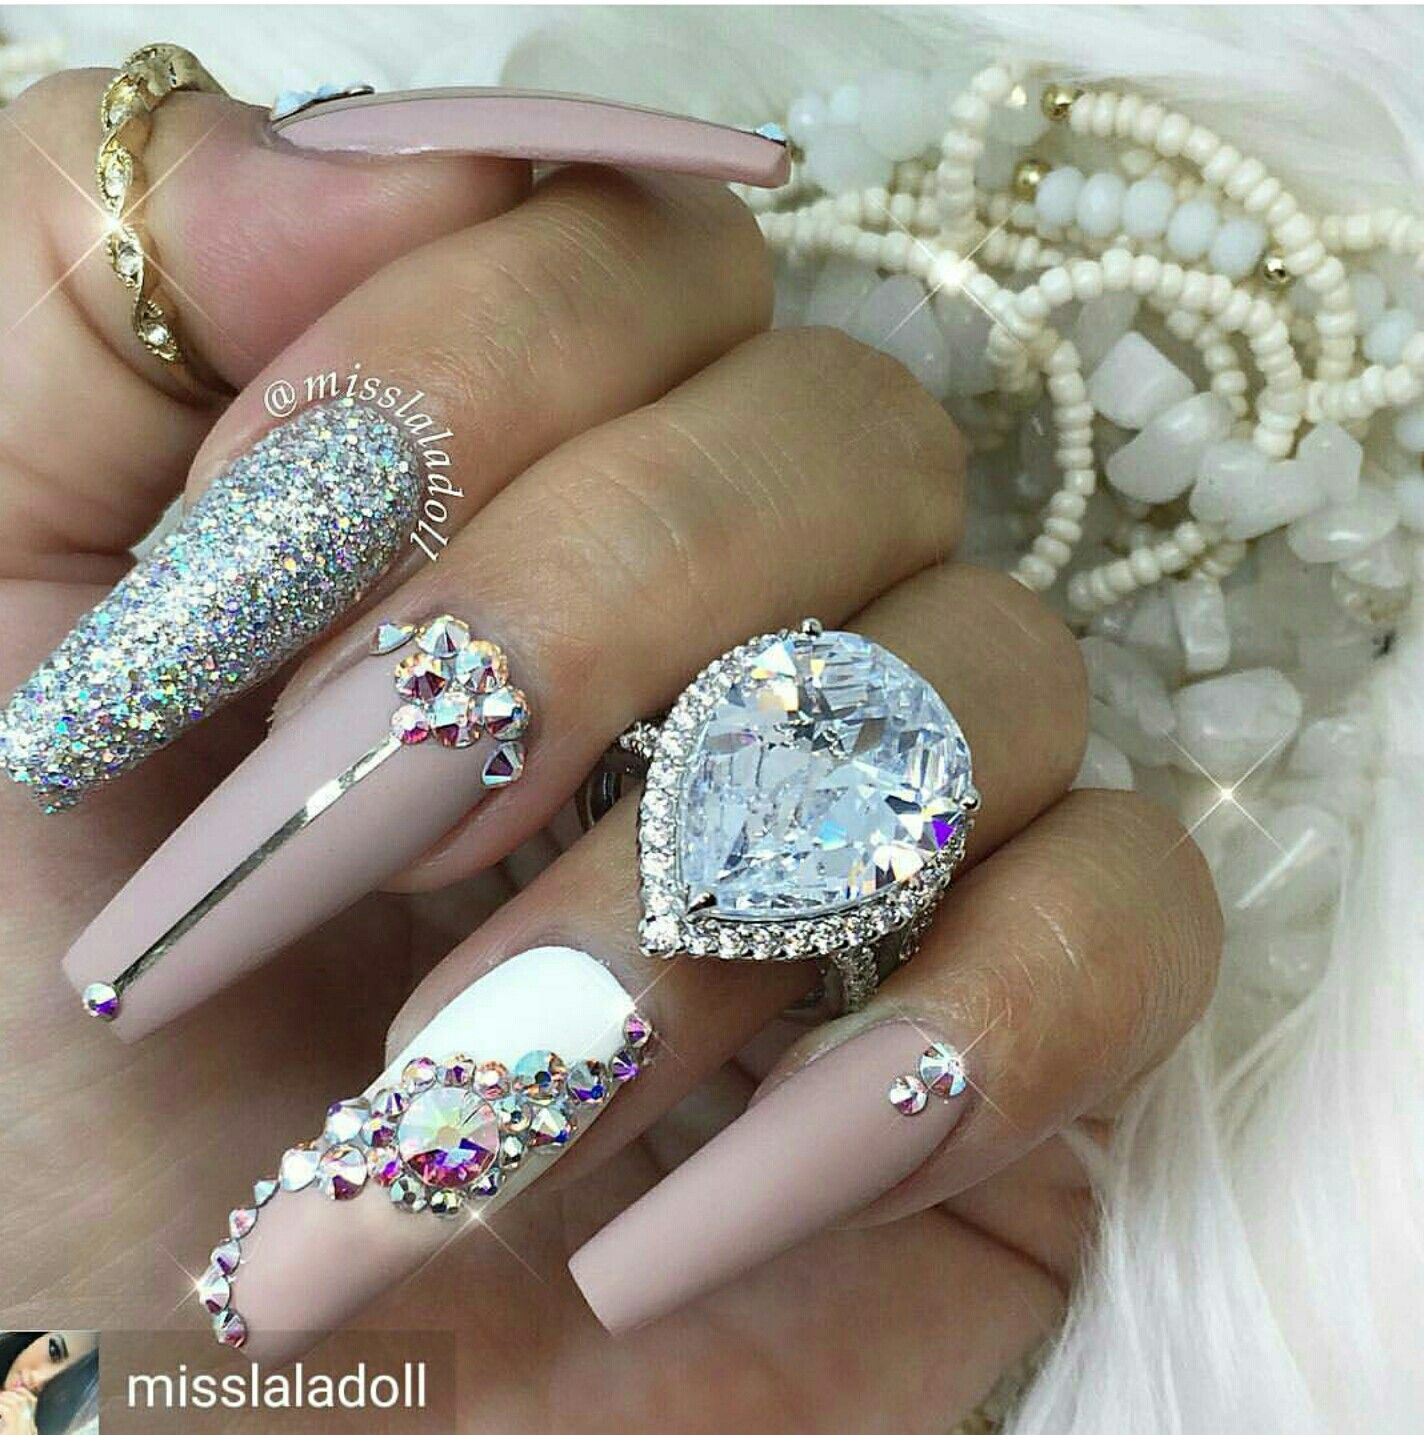 Pin by anna anna on Beauty | Pinterest | Nail nail, Makeup and ...